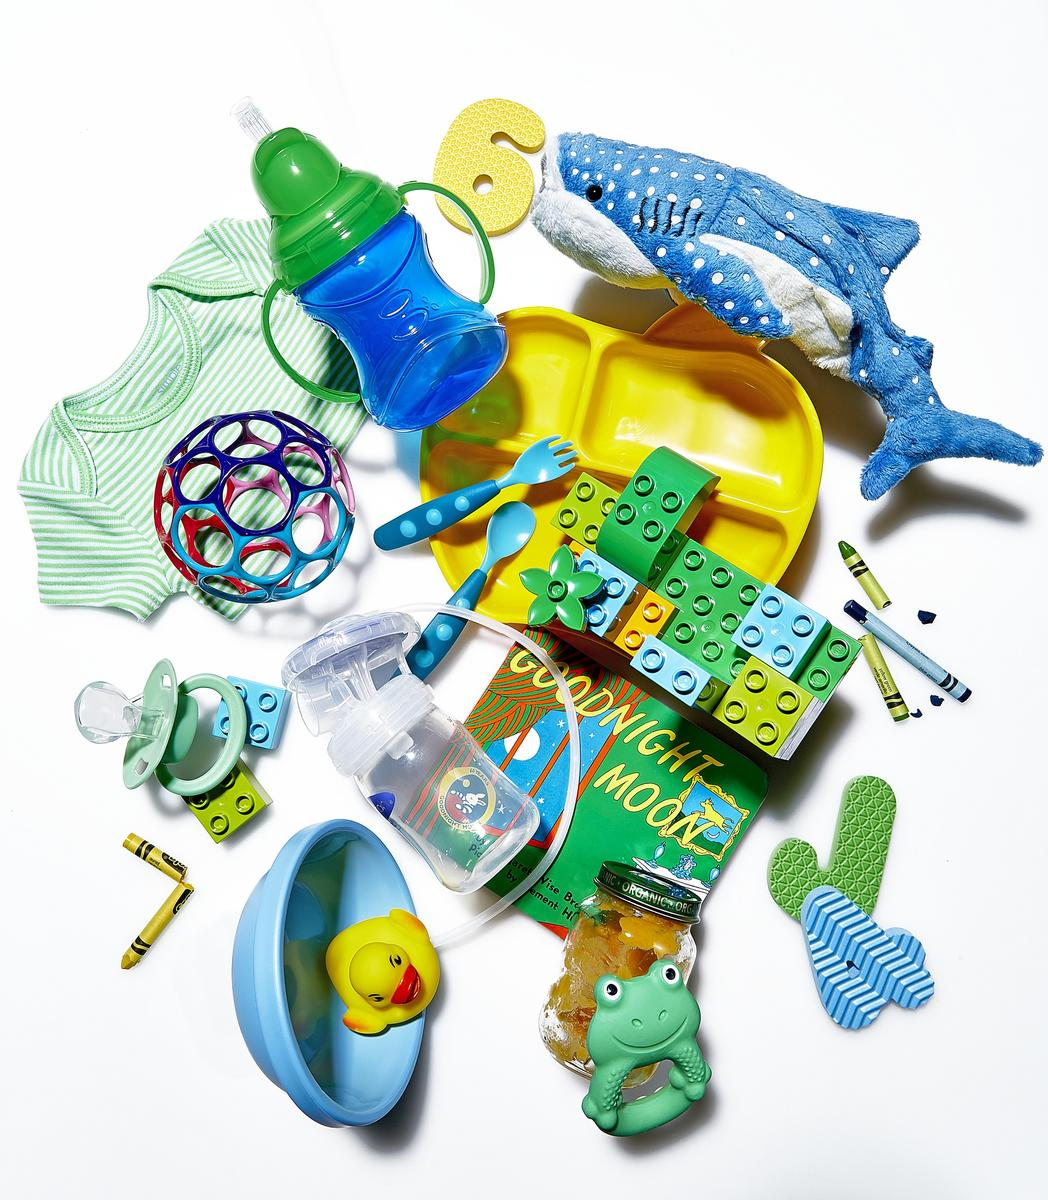 How to Recycle Your Baby Gear